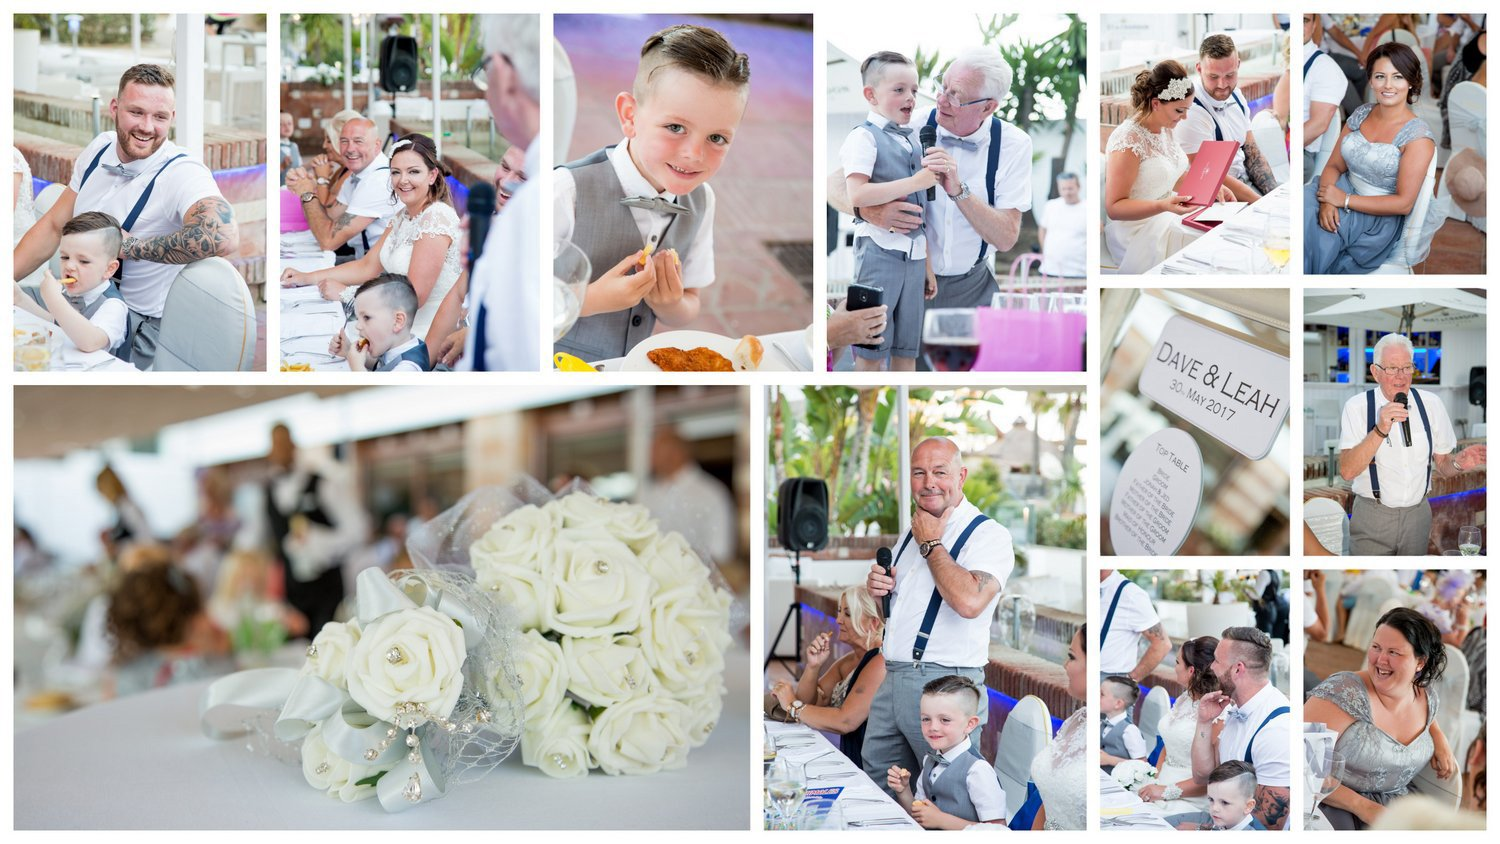 wedding guadalpin marbella spain